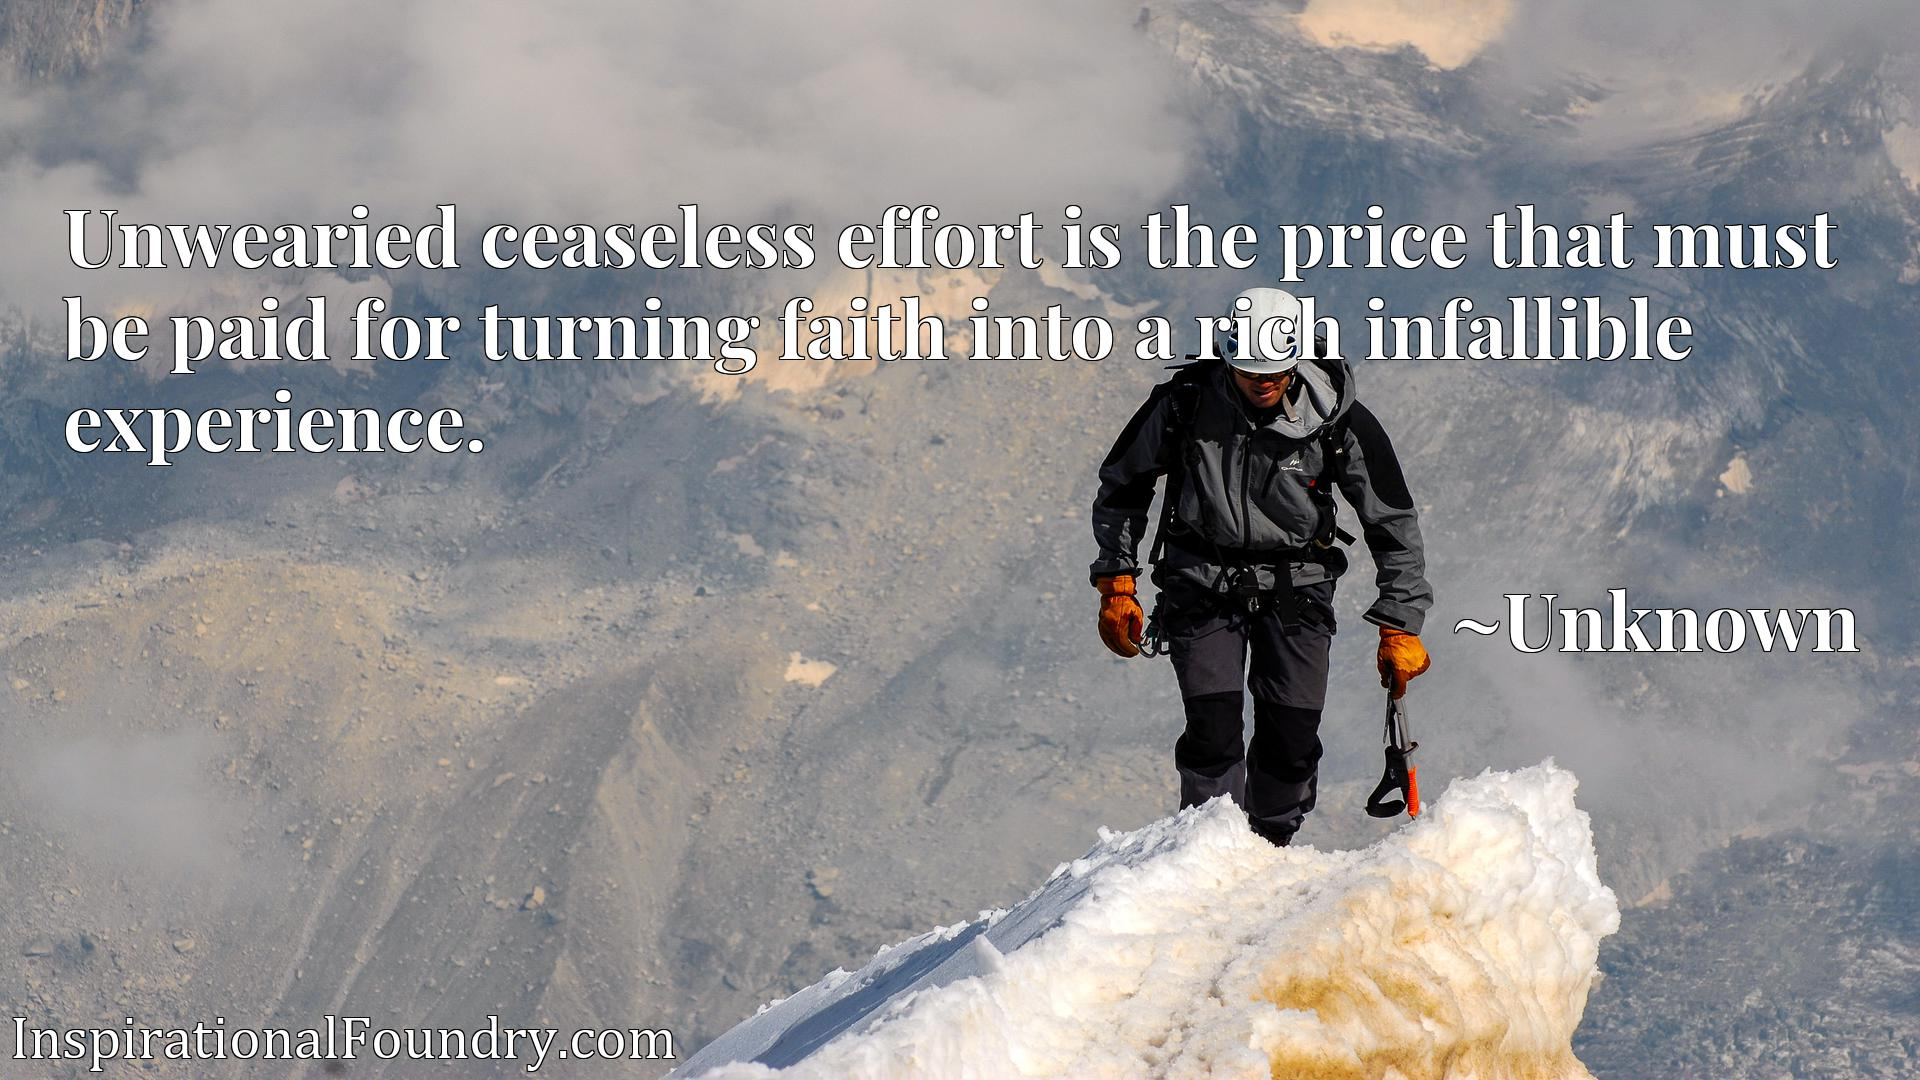 Unwearied ceaseless effort is the price that must be paid for turning faith into a rich infallible experience.